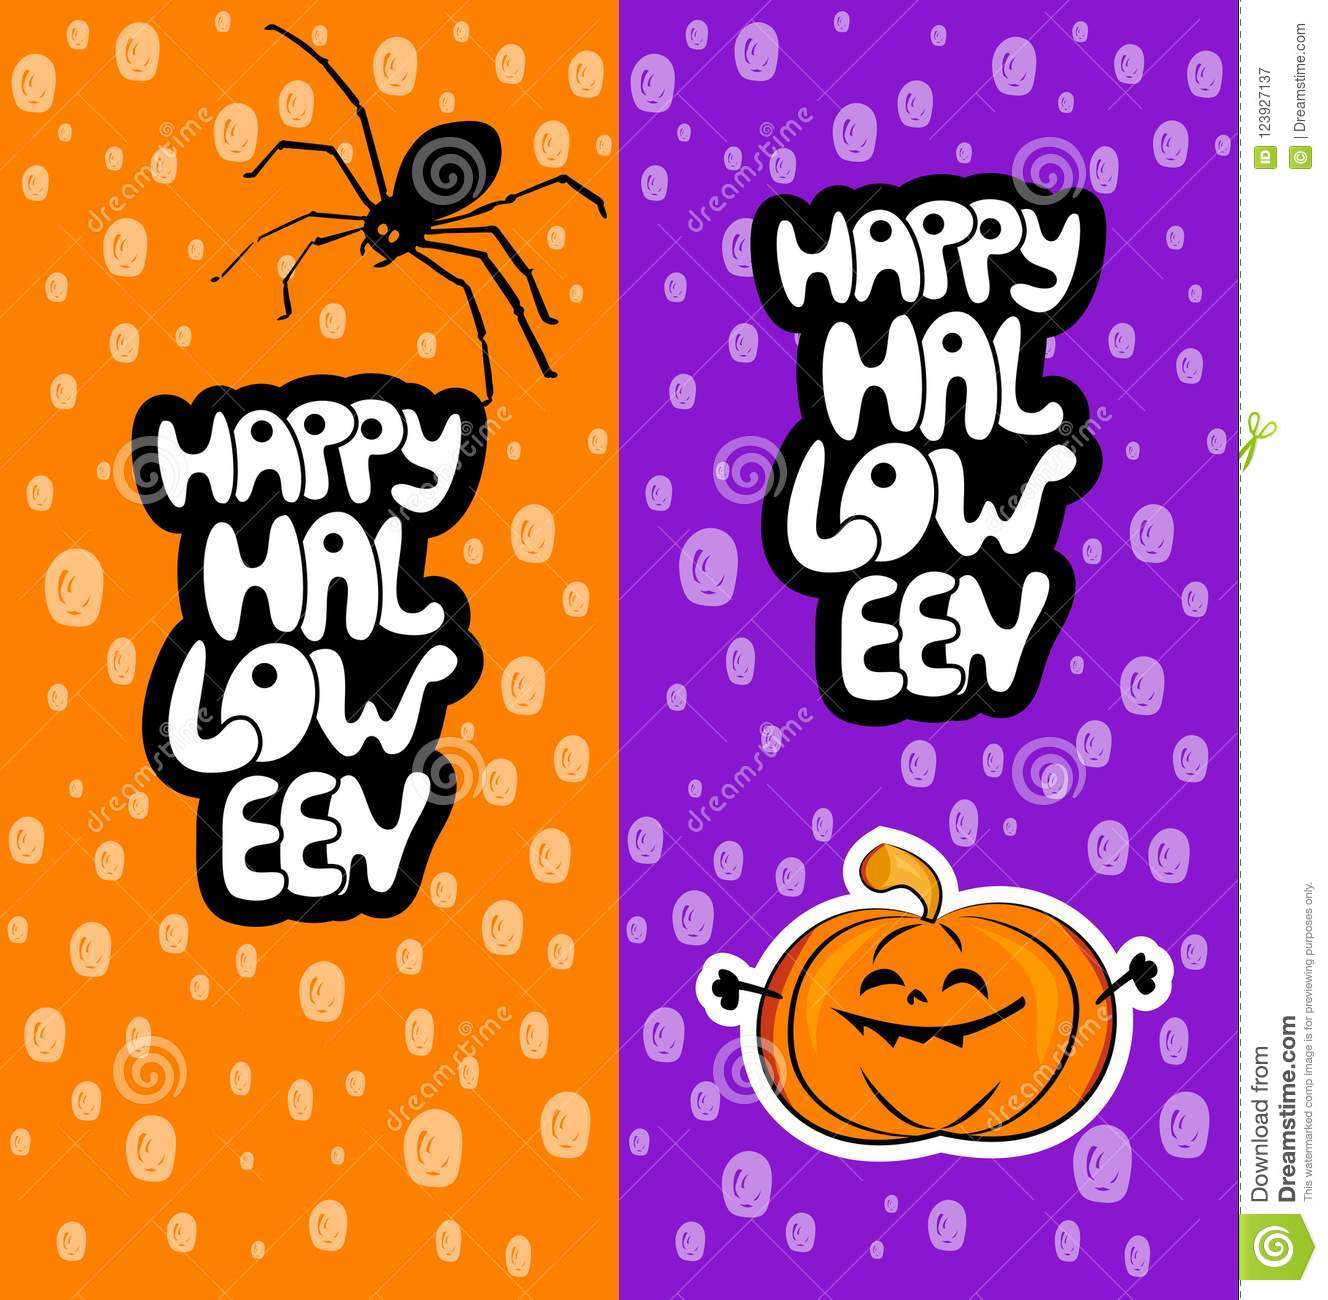 download happy halloween cards with spider and pumpkin stock illustration illustration of cute